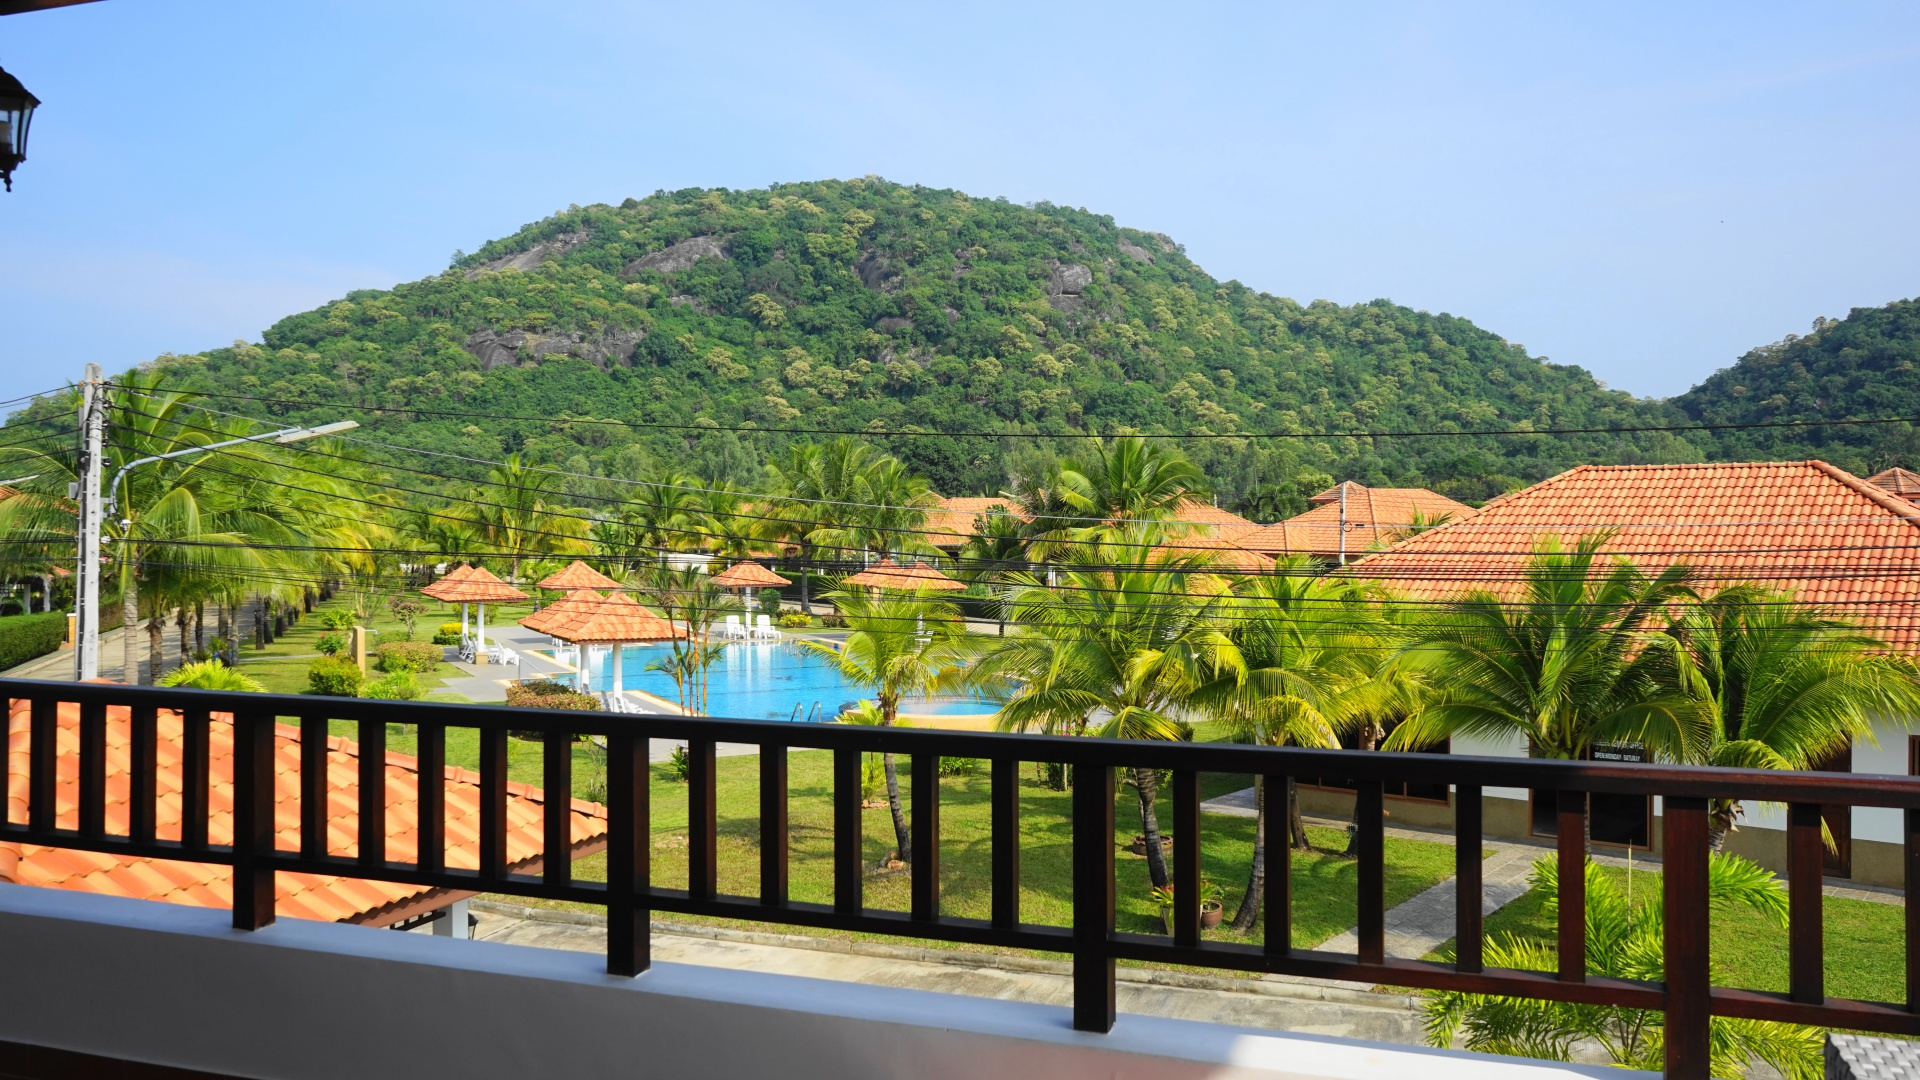 View from Villa Royale F3 in Manora Village III, Hua Hin, Thailand